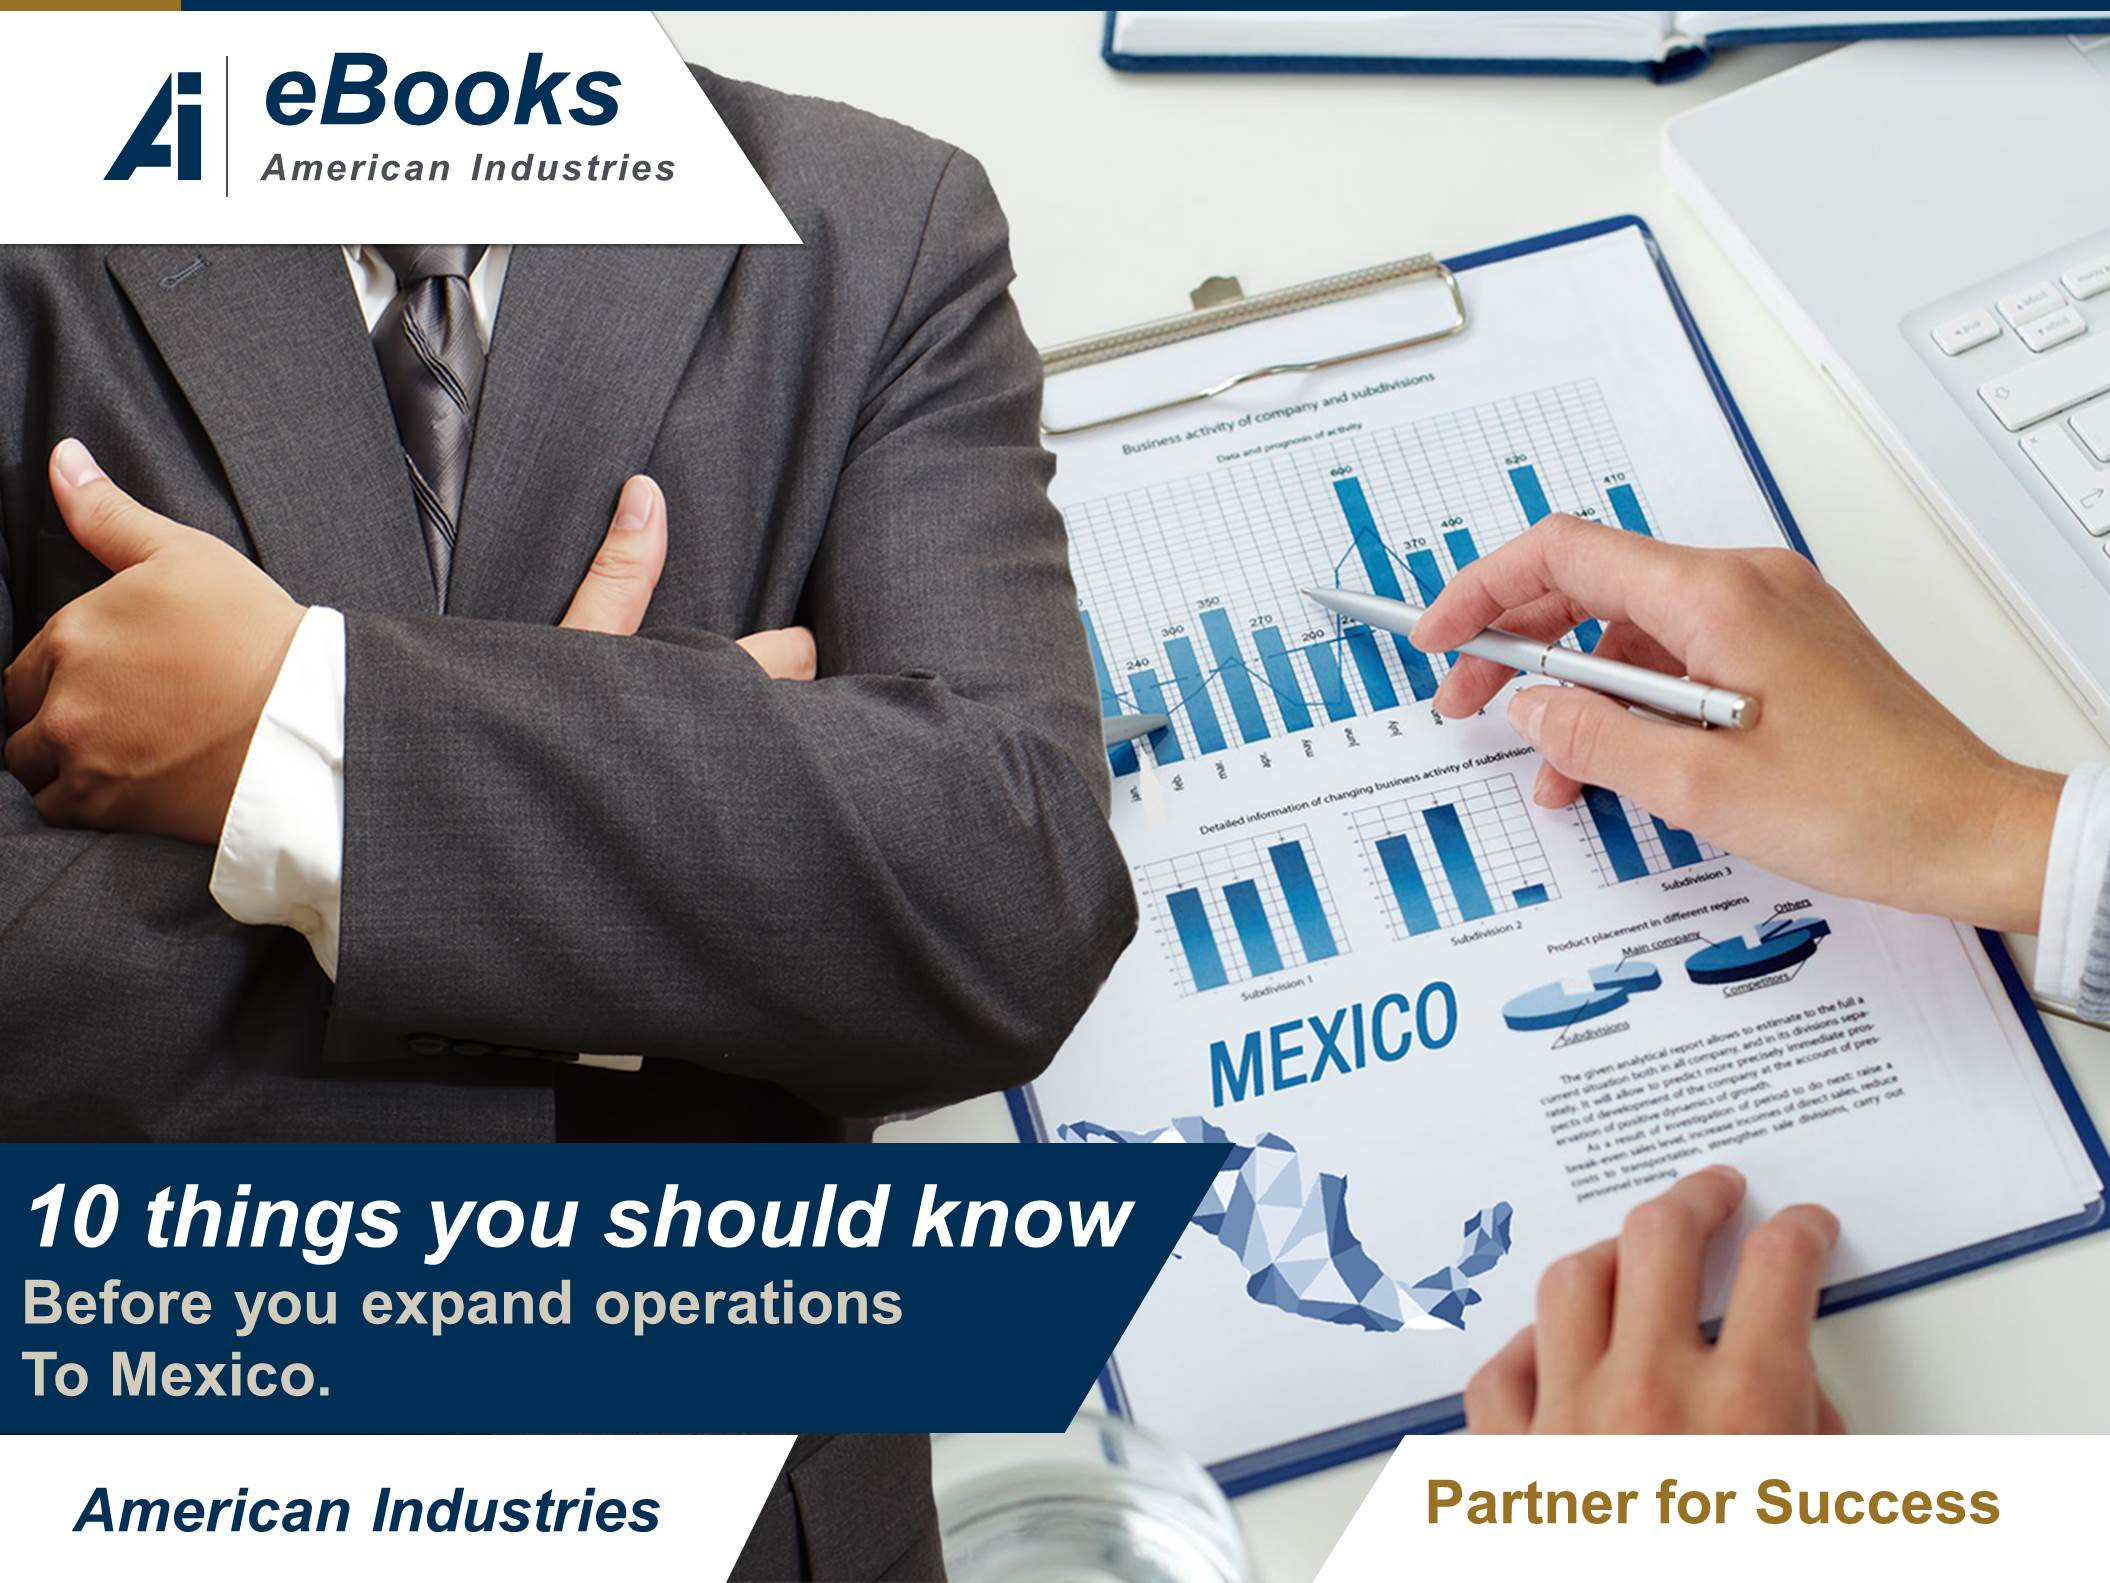 10 things you should know before you expand operations to mexico - 10 things you should know before you expand operations to Mexico